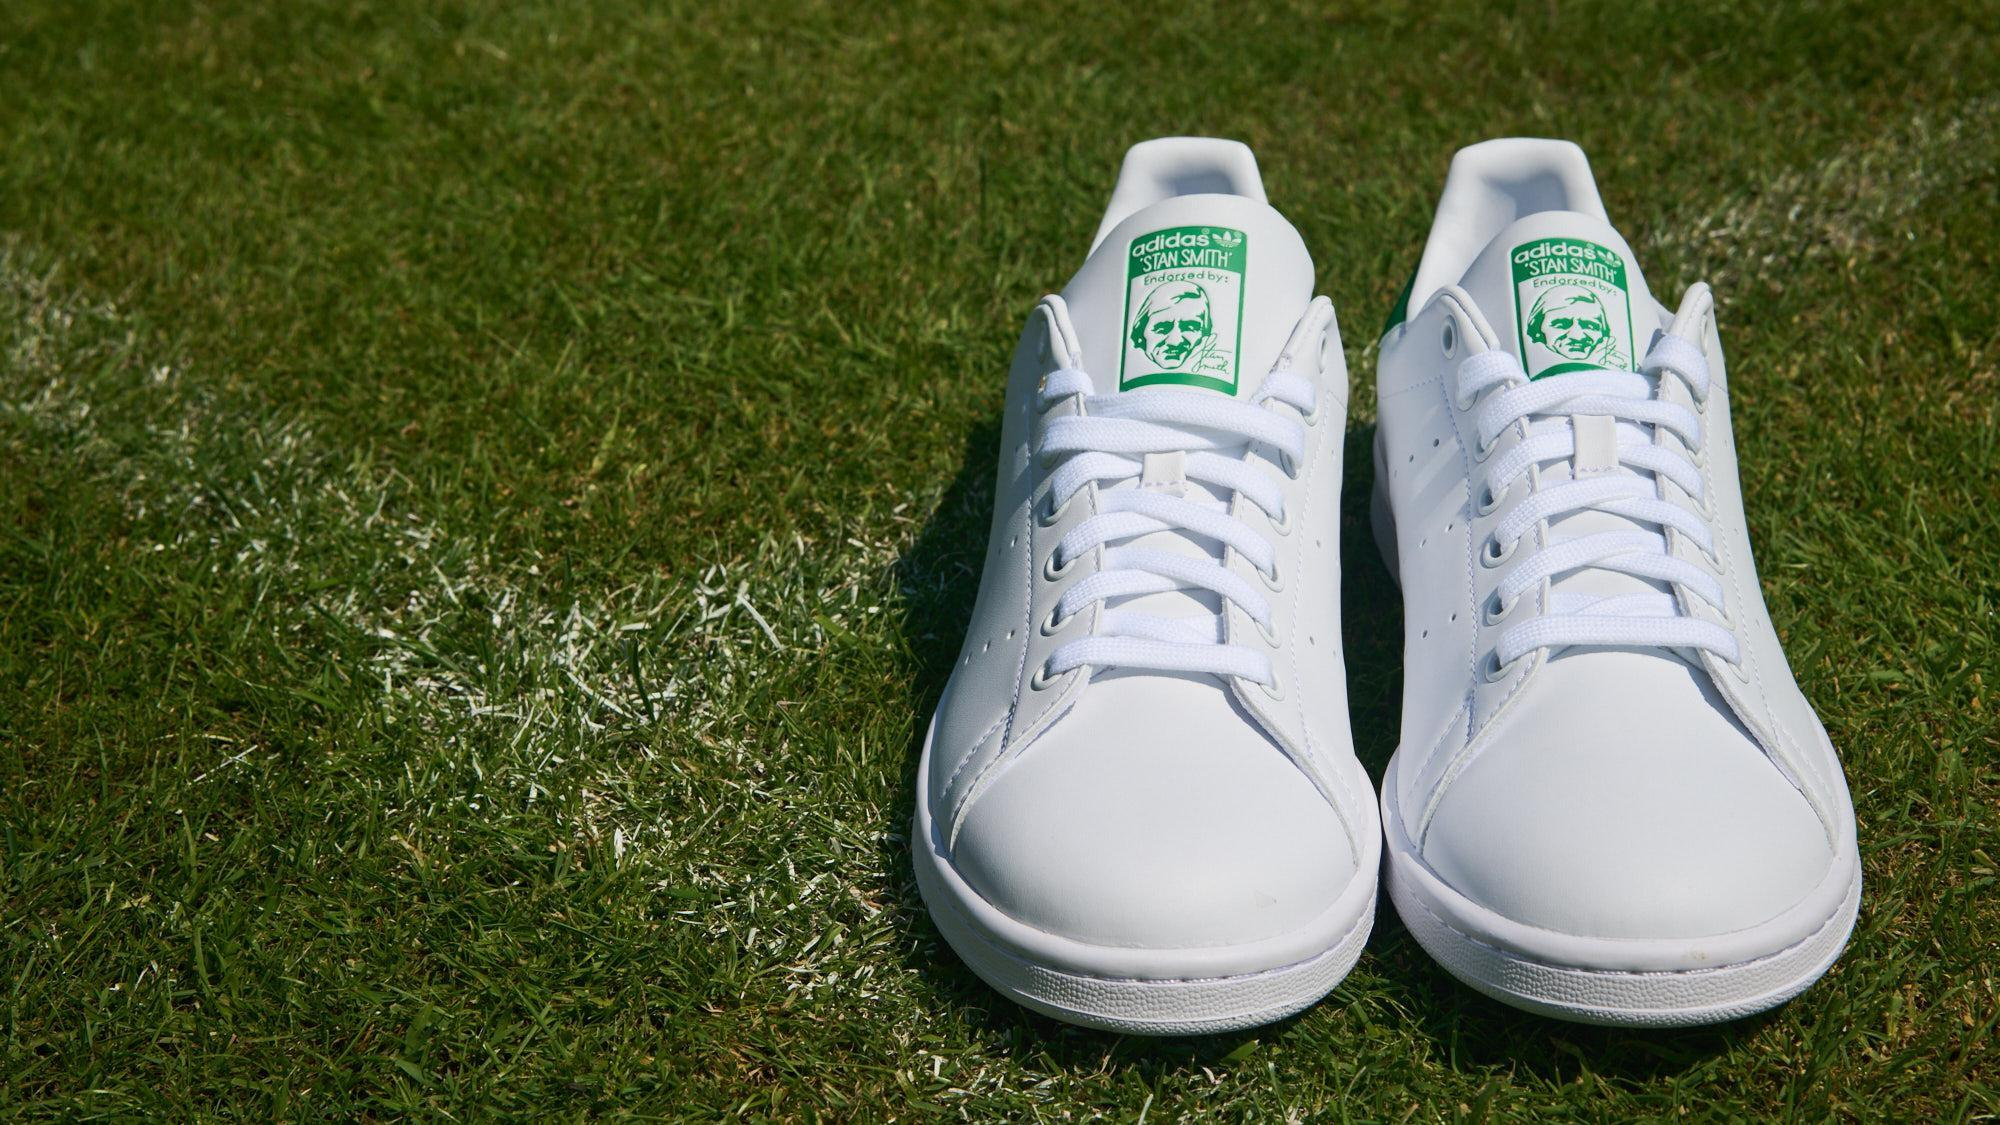 10 Best White Adidas Sneakers in 2021